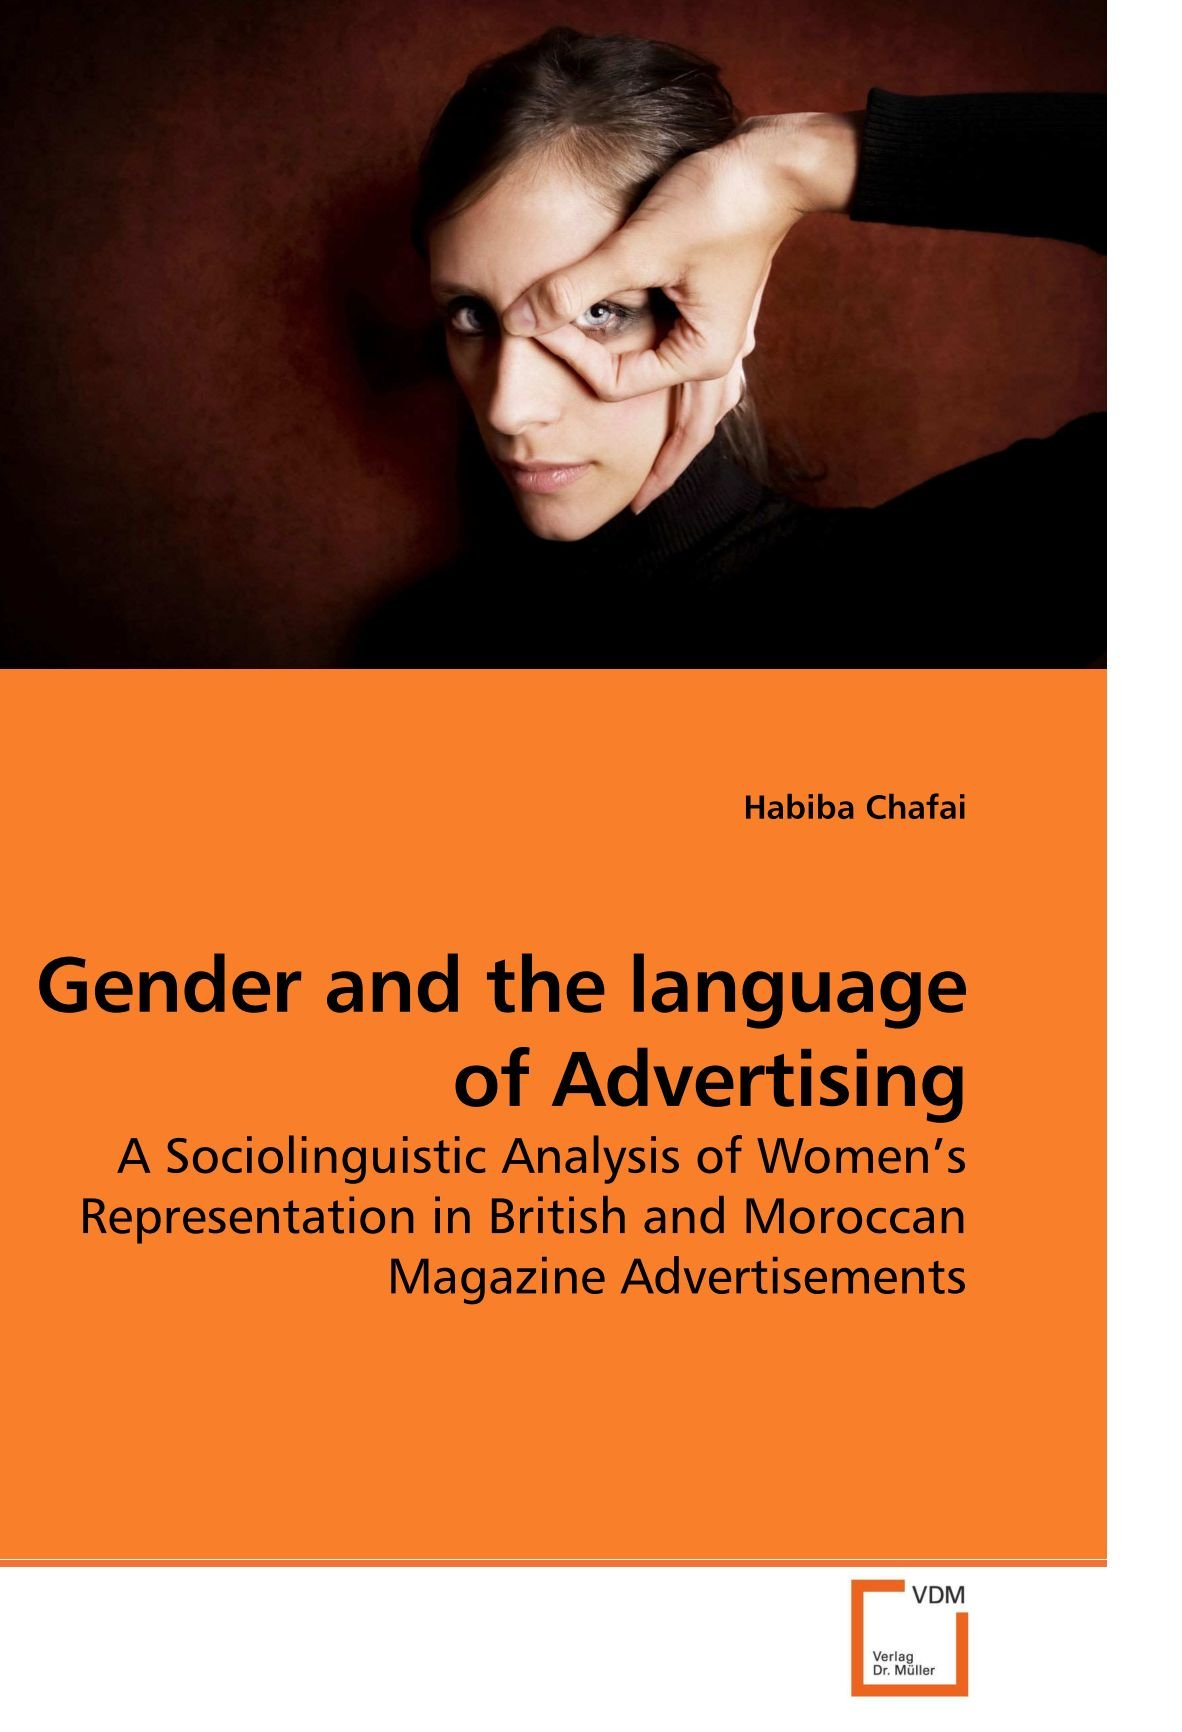 Gender and the language of Advertising: A Sociolinguistic Analysis of Women?s Representation in British and Moroccan Magazine Advertisements by VDM Verlag Dr. Müller